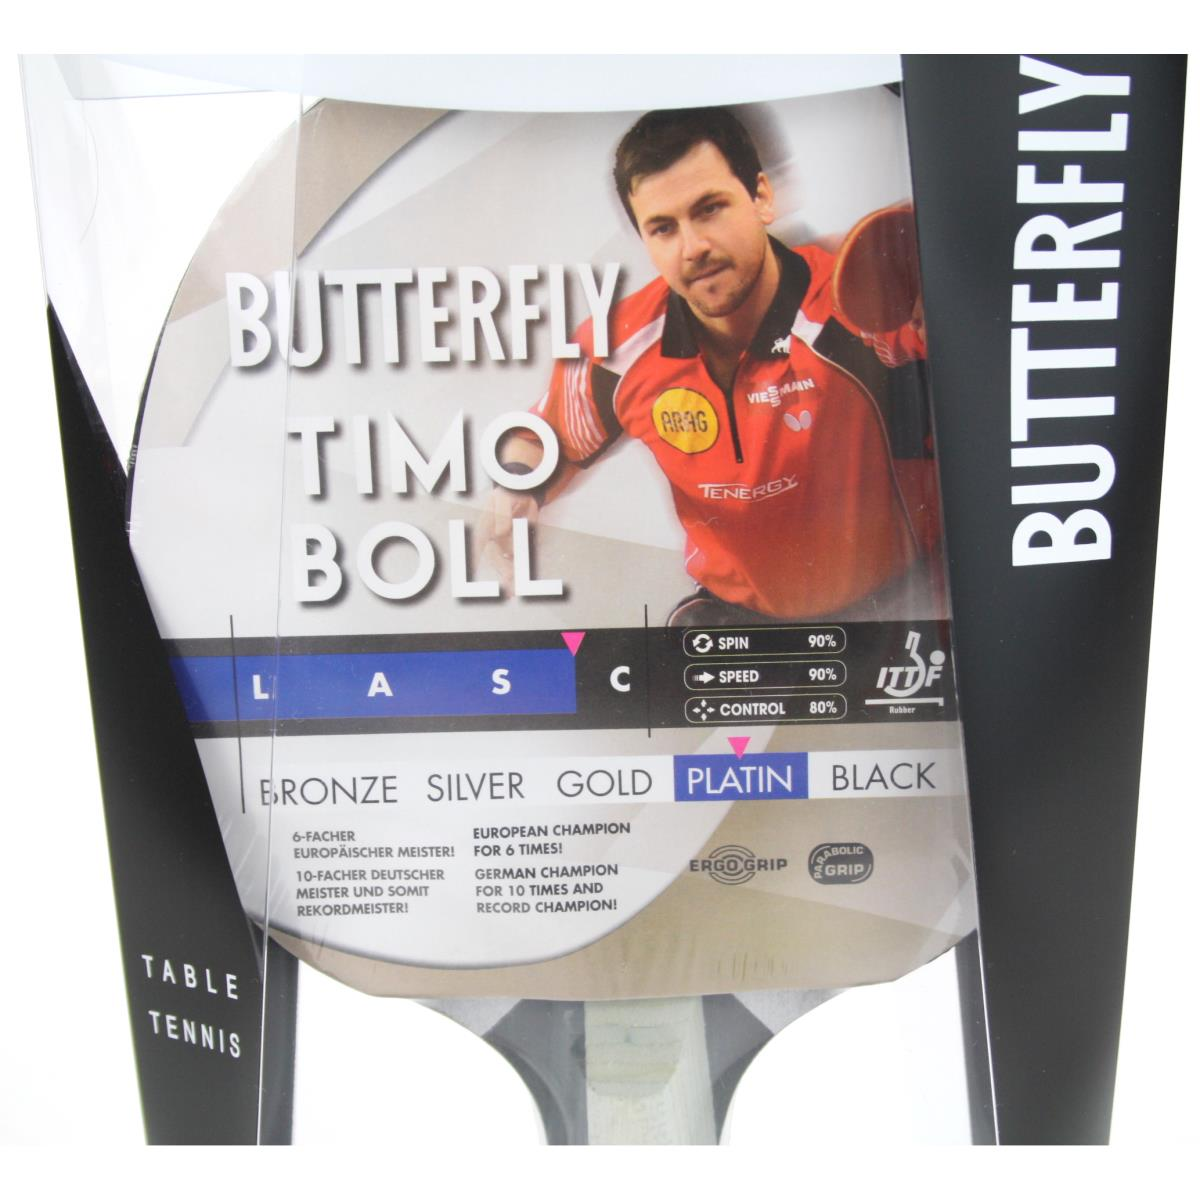 Butterfly Timo Boll Platin 85026 Tischtennisschläger Profi Tischtennis TT,Butterfly Timo Boll,000051376395, 4001078850265